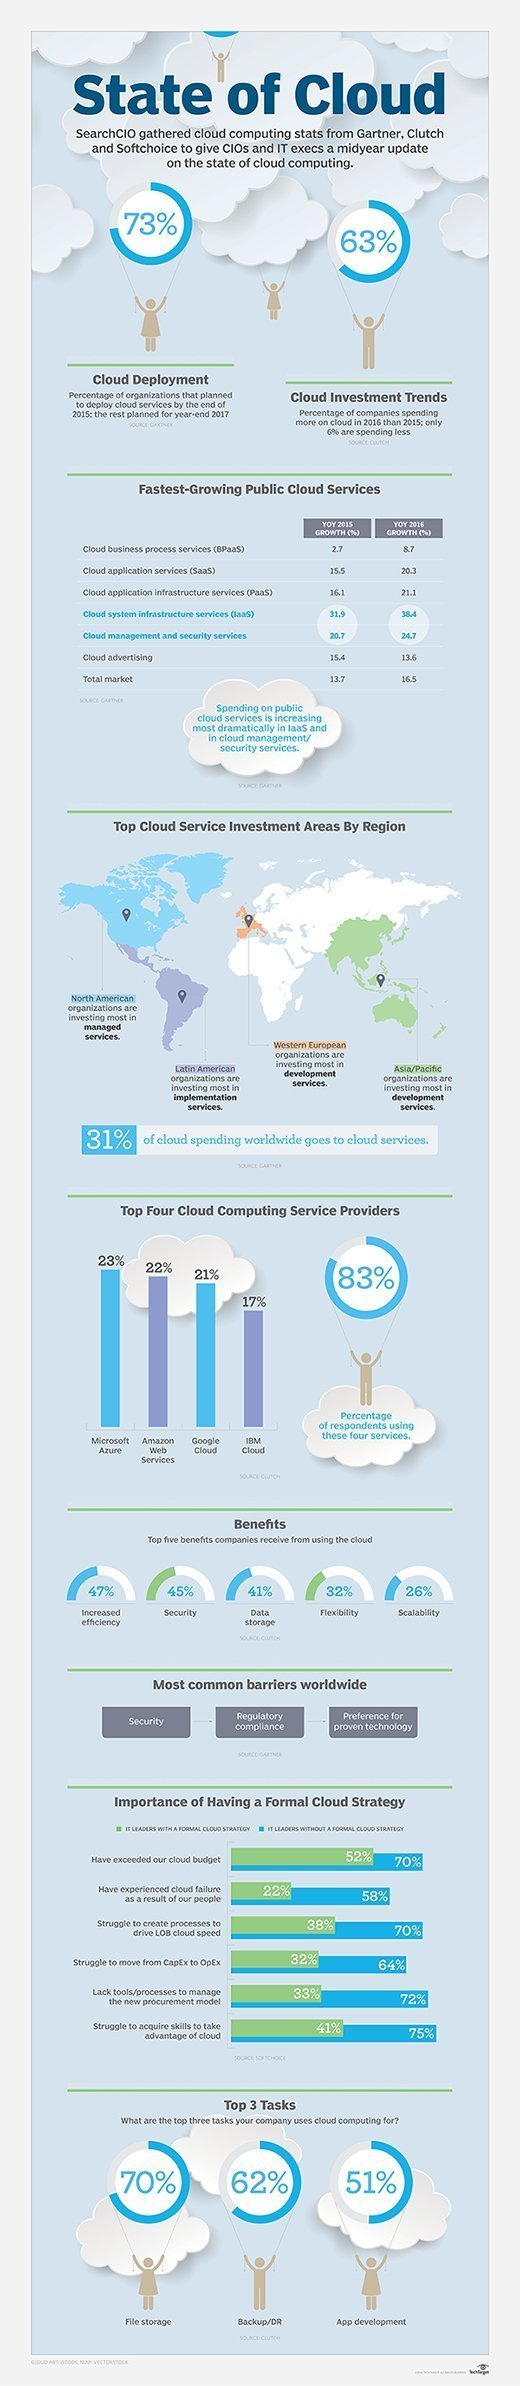 Infographic showing the state of cloud computing